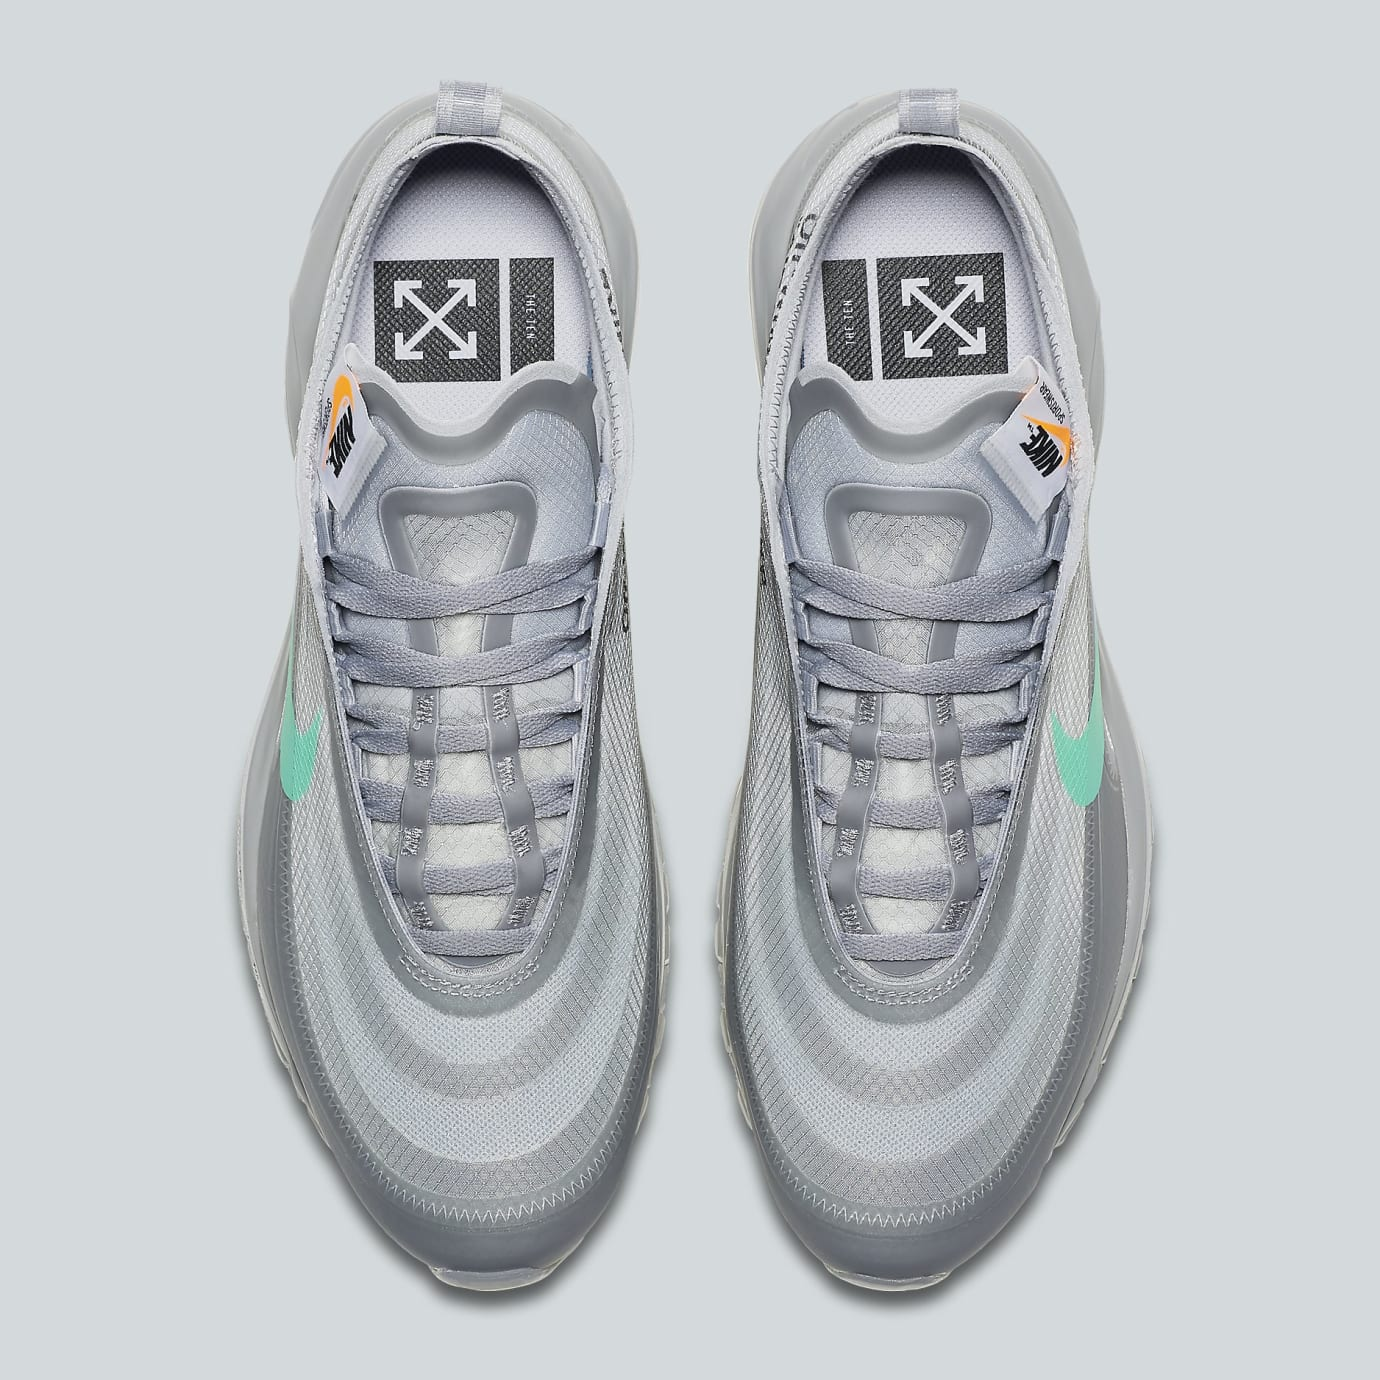 Image via Nike Off-White x Nike Air Max 97 Off-White Wolf Grey White Menta  Release 617a7d216